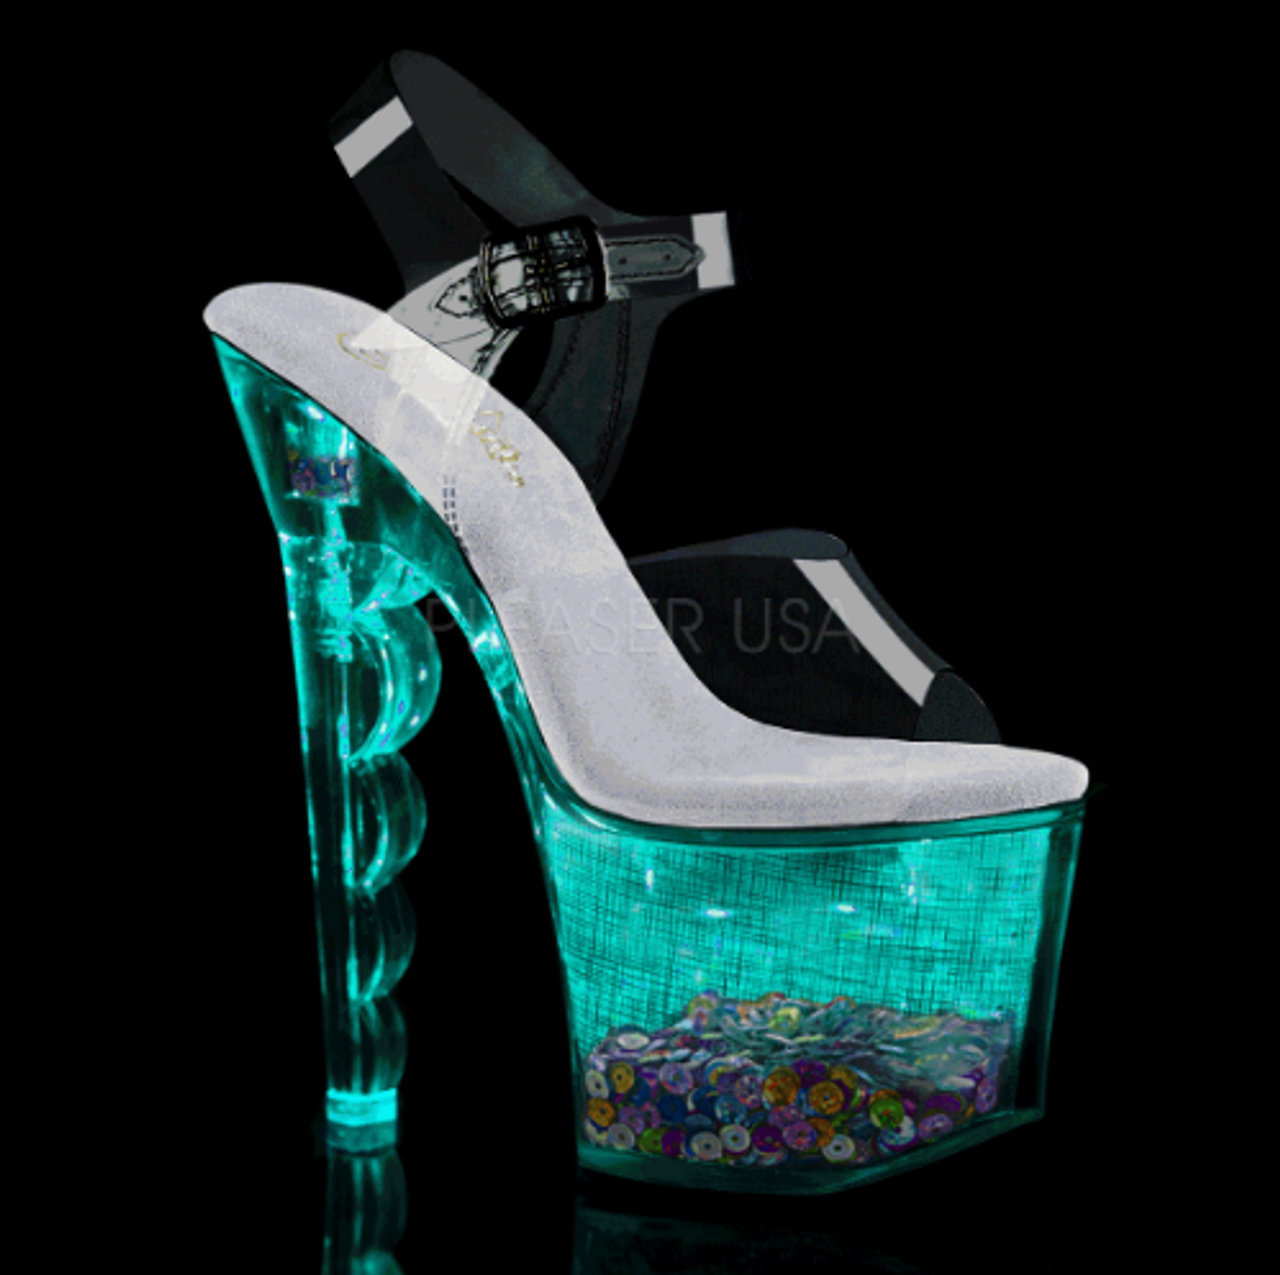 410a2156c57 Flashdance-708SCHSQ, Lite-up with Multi-Color Sequin in Platform